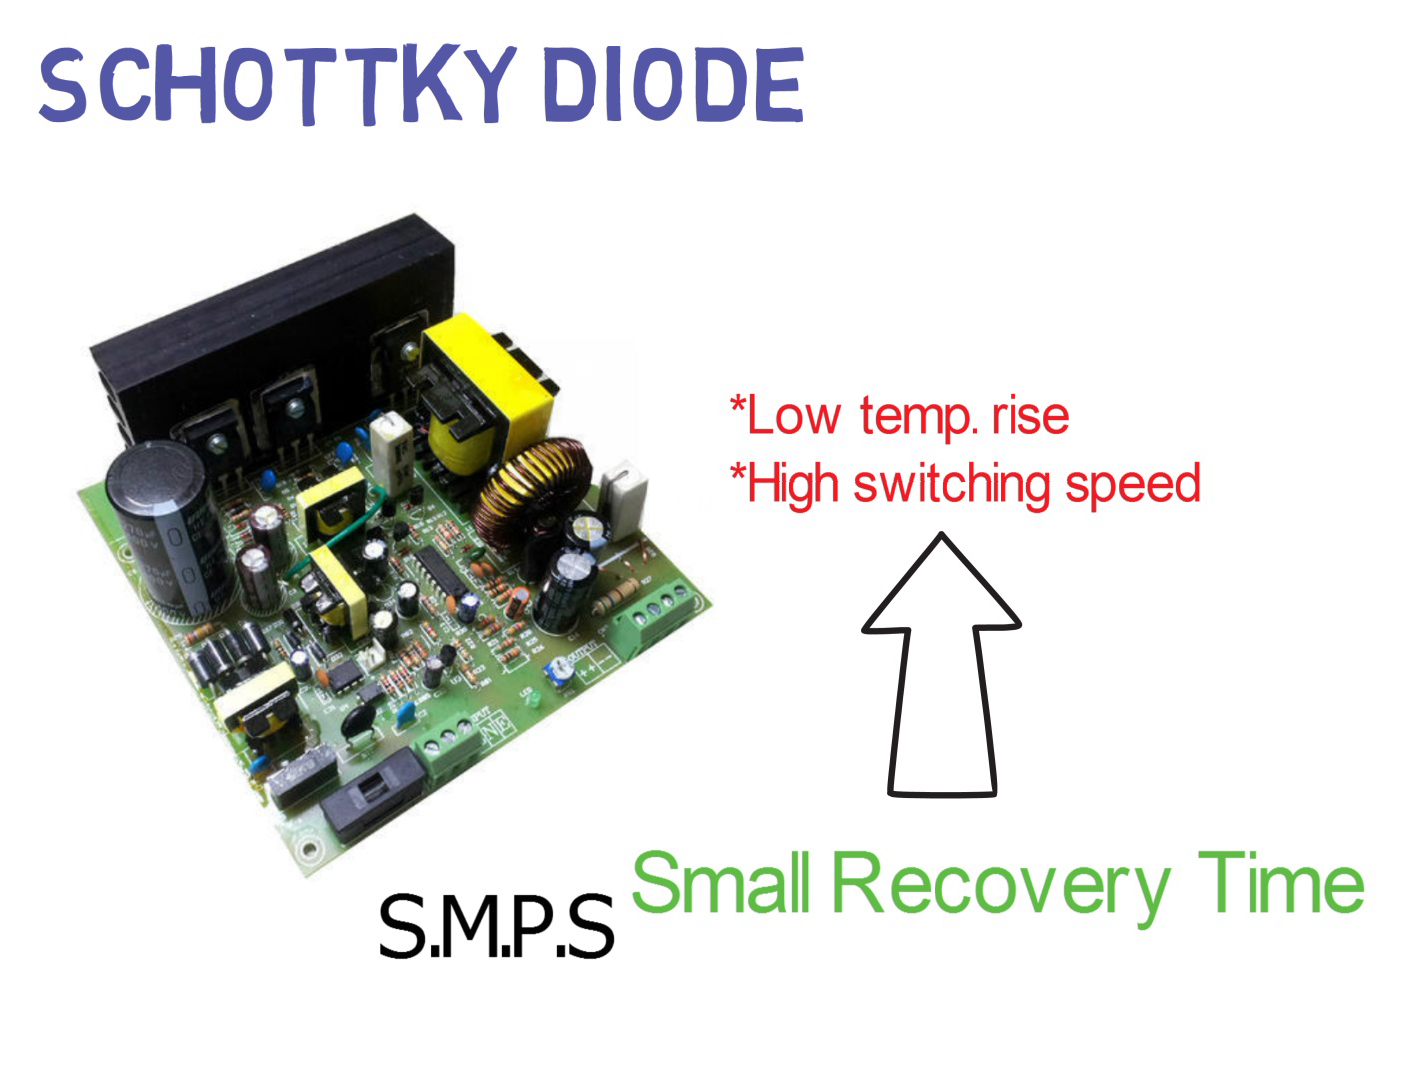 A Schottky diode in an SMPS